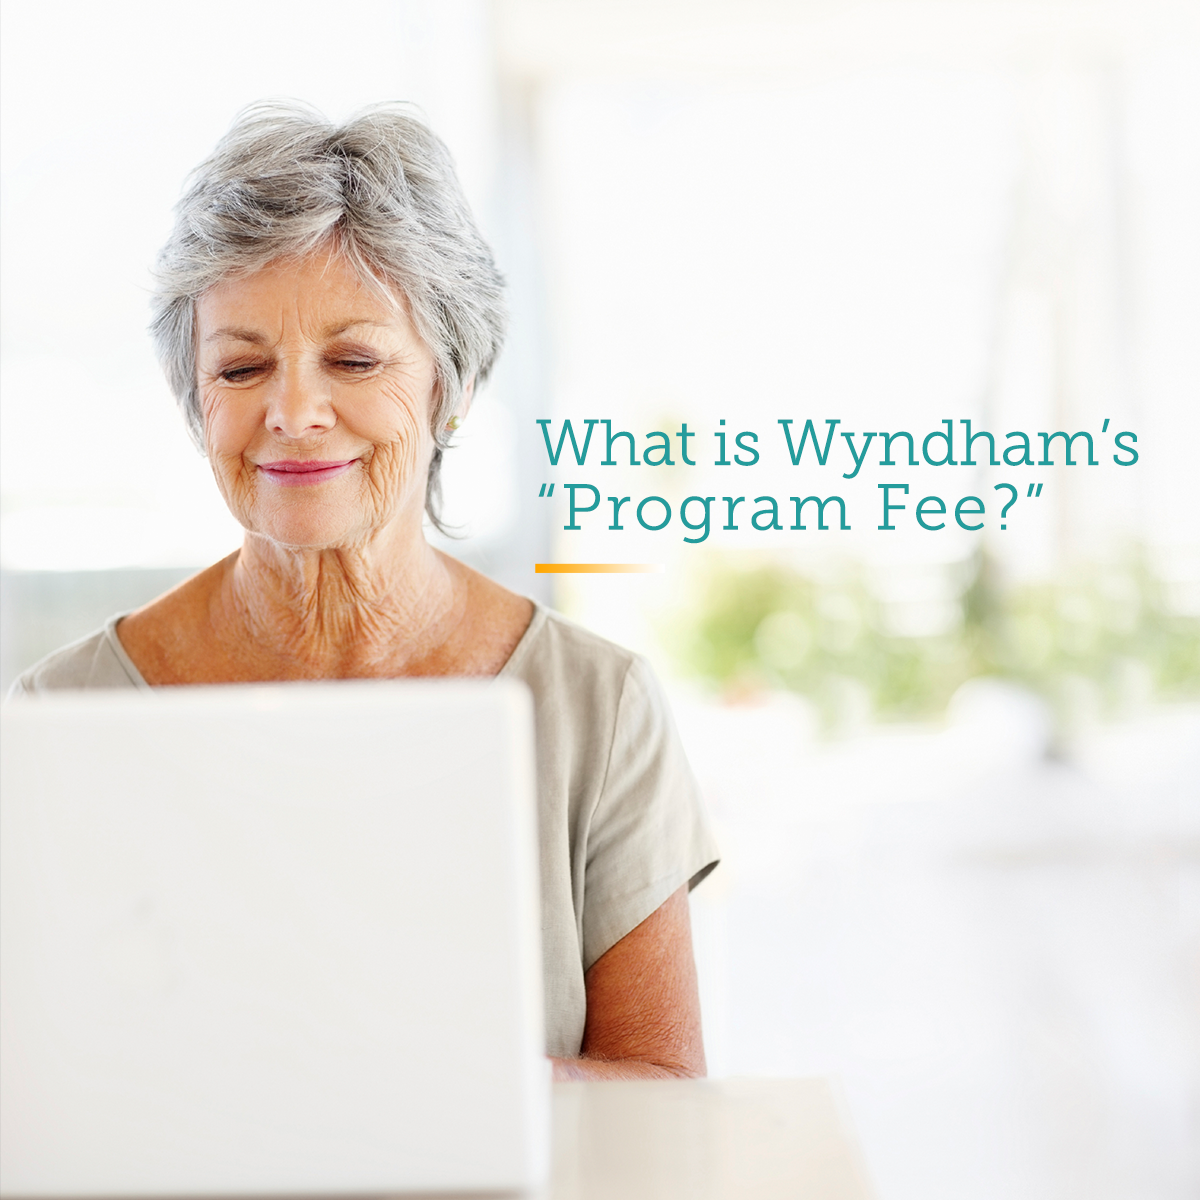 Call VMS if unsure about Wyndhams Program Fee